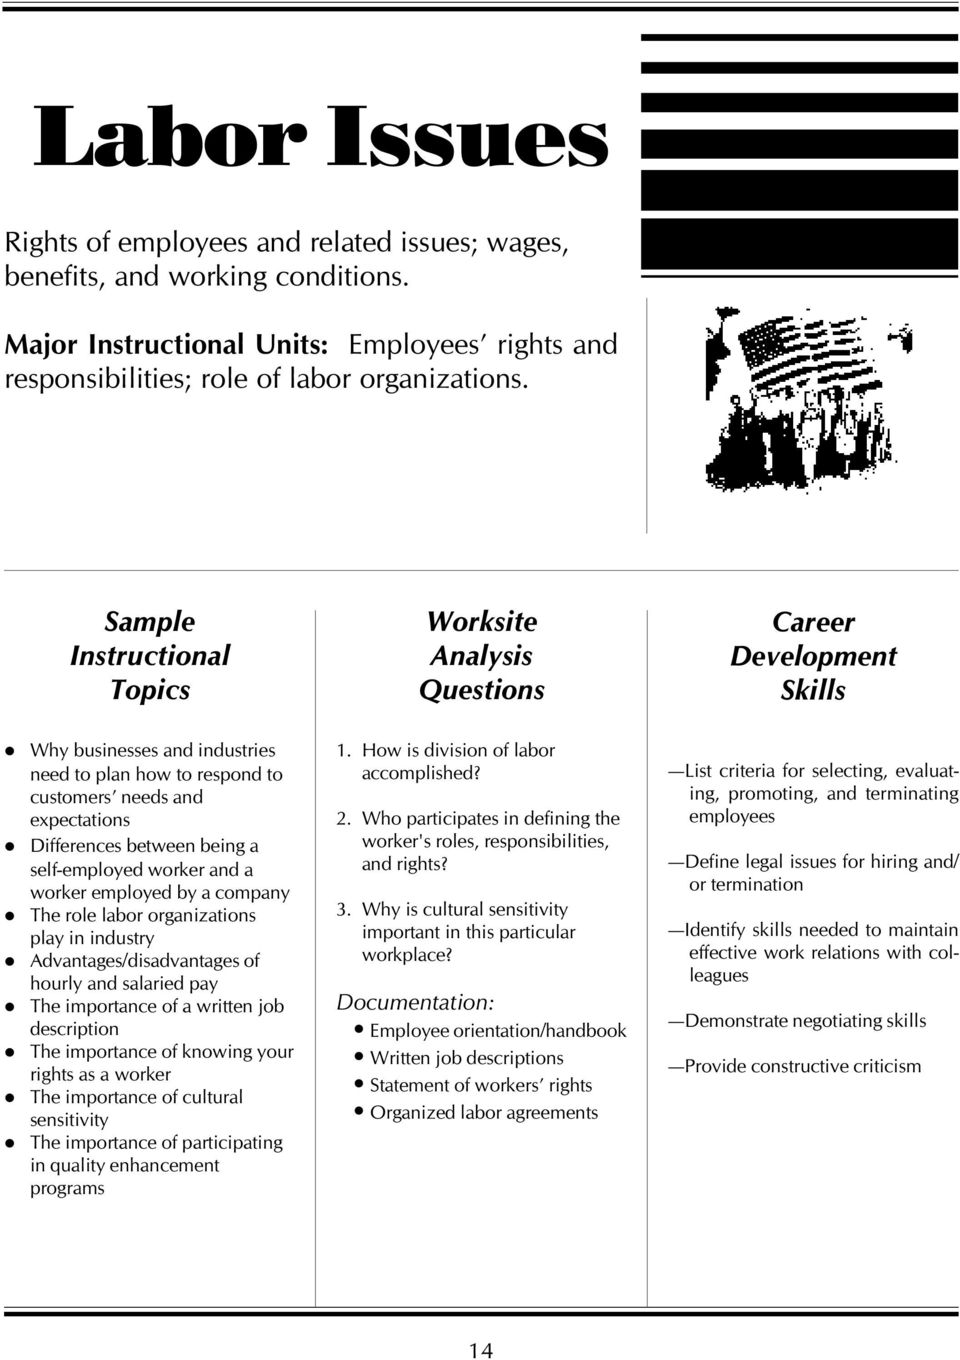 sef-empoyed worker and a worker empoyed by a company The roe abor organizations pay in industry Advantages/disadvantages of houry and saaried pay The importance of a written job description The